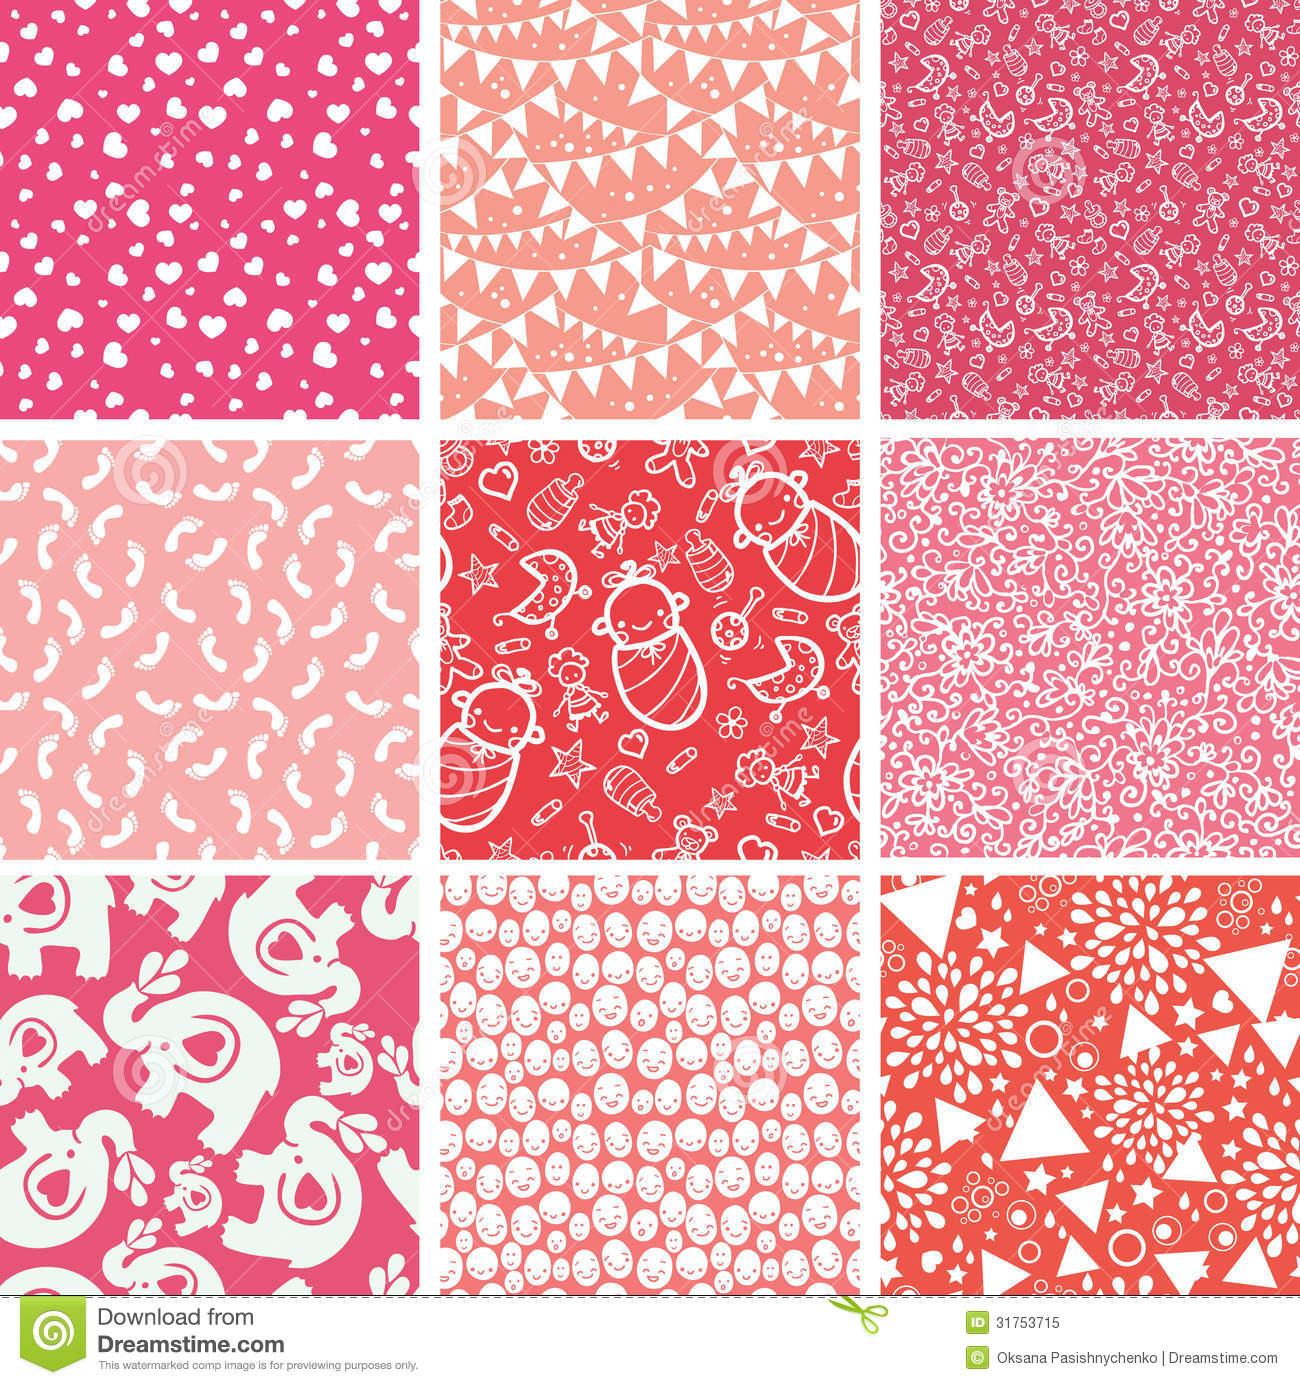 Nine Baby Girl Pink Seamless Patterns Backgrounds Royalty ...